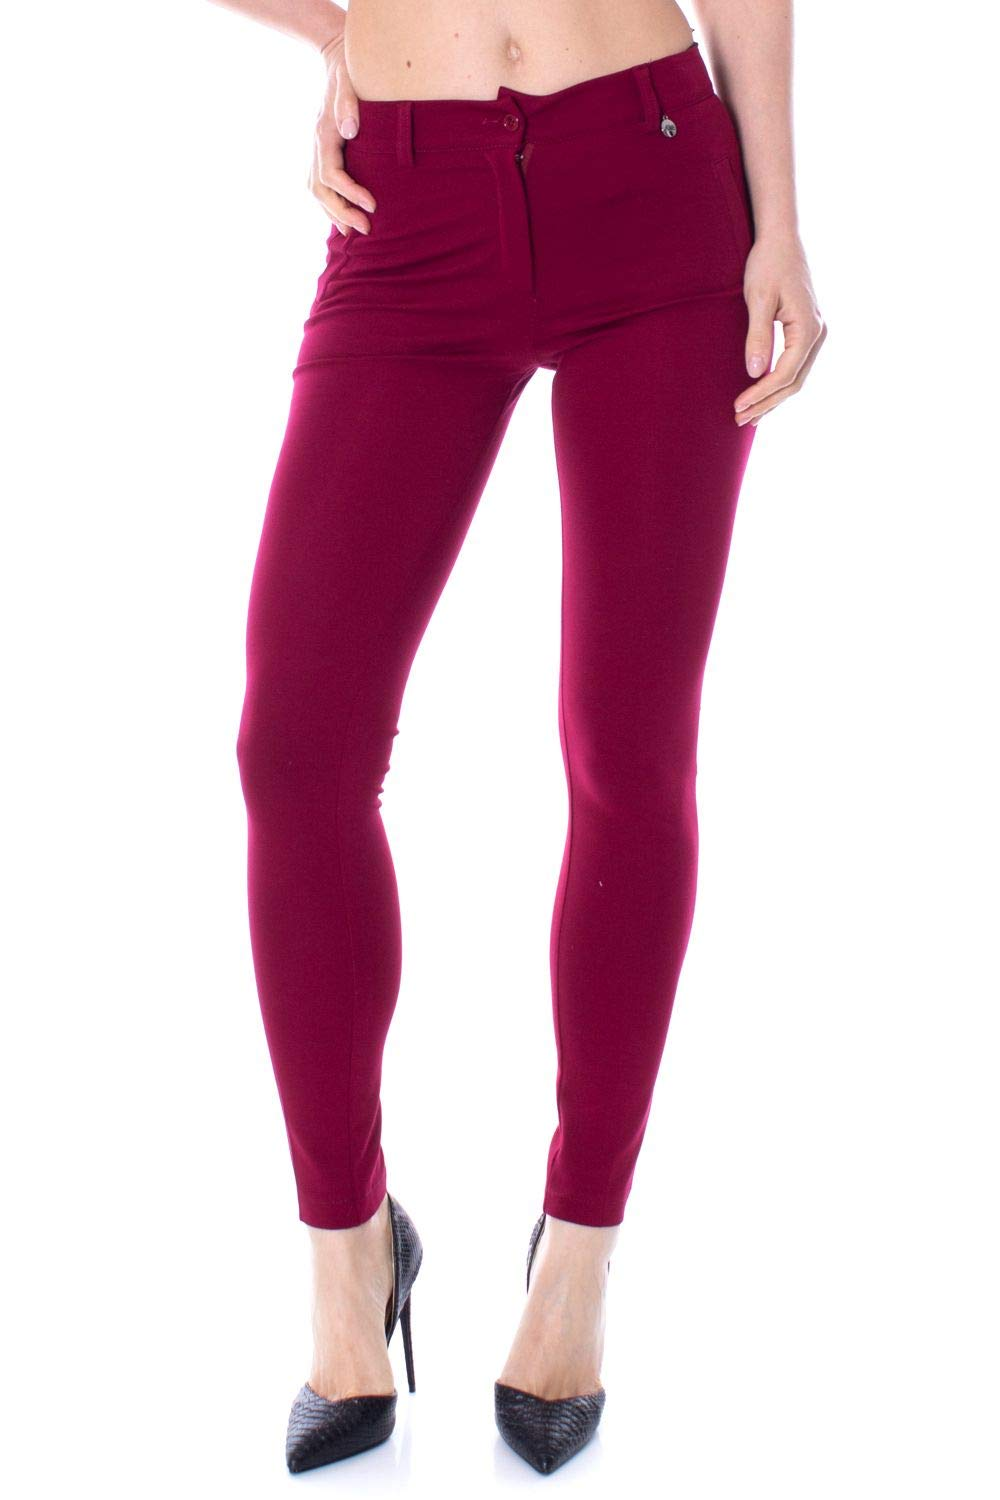 Akè Women's F646YAIP5151BORDEAUX Burgundy Viscose Pants